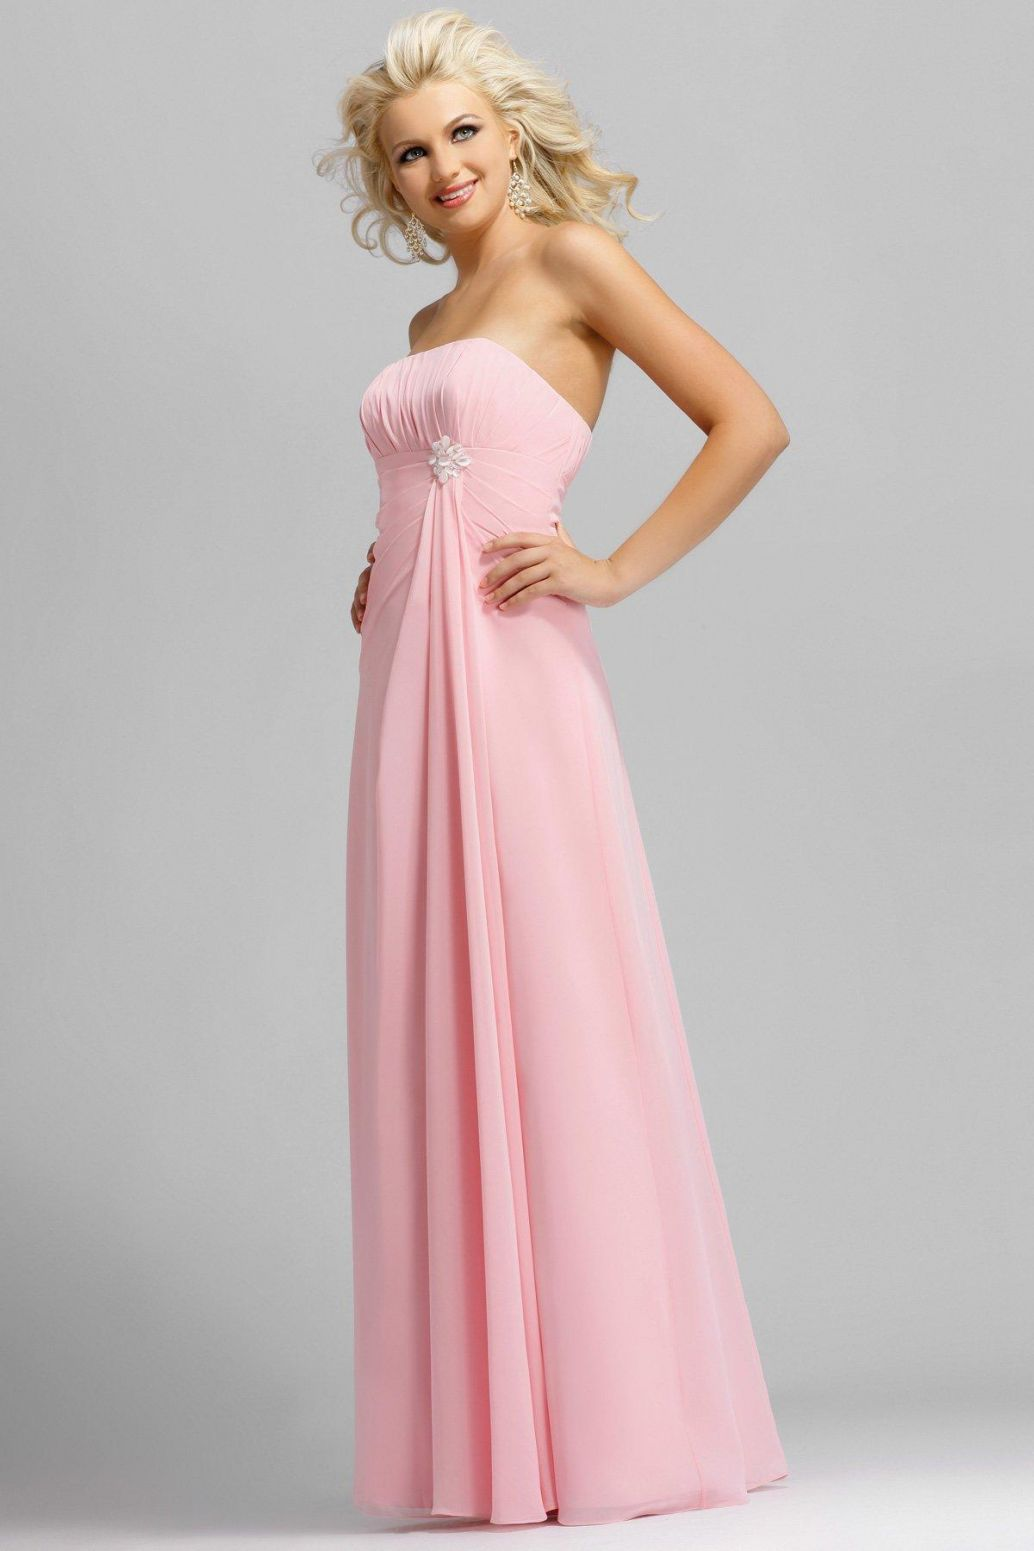 Long bright pink bridesmaid dress designs wedding dress for Design wedding dress online